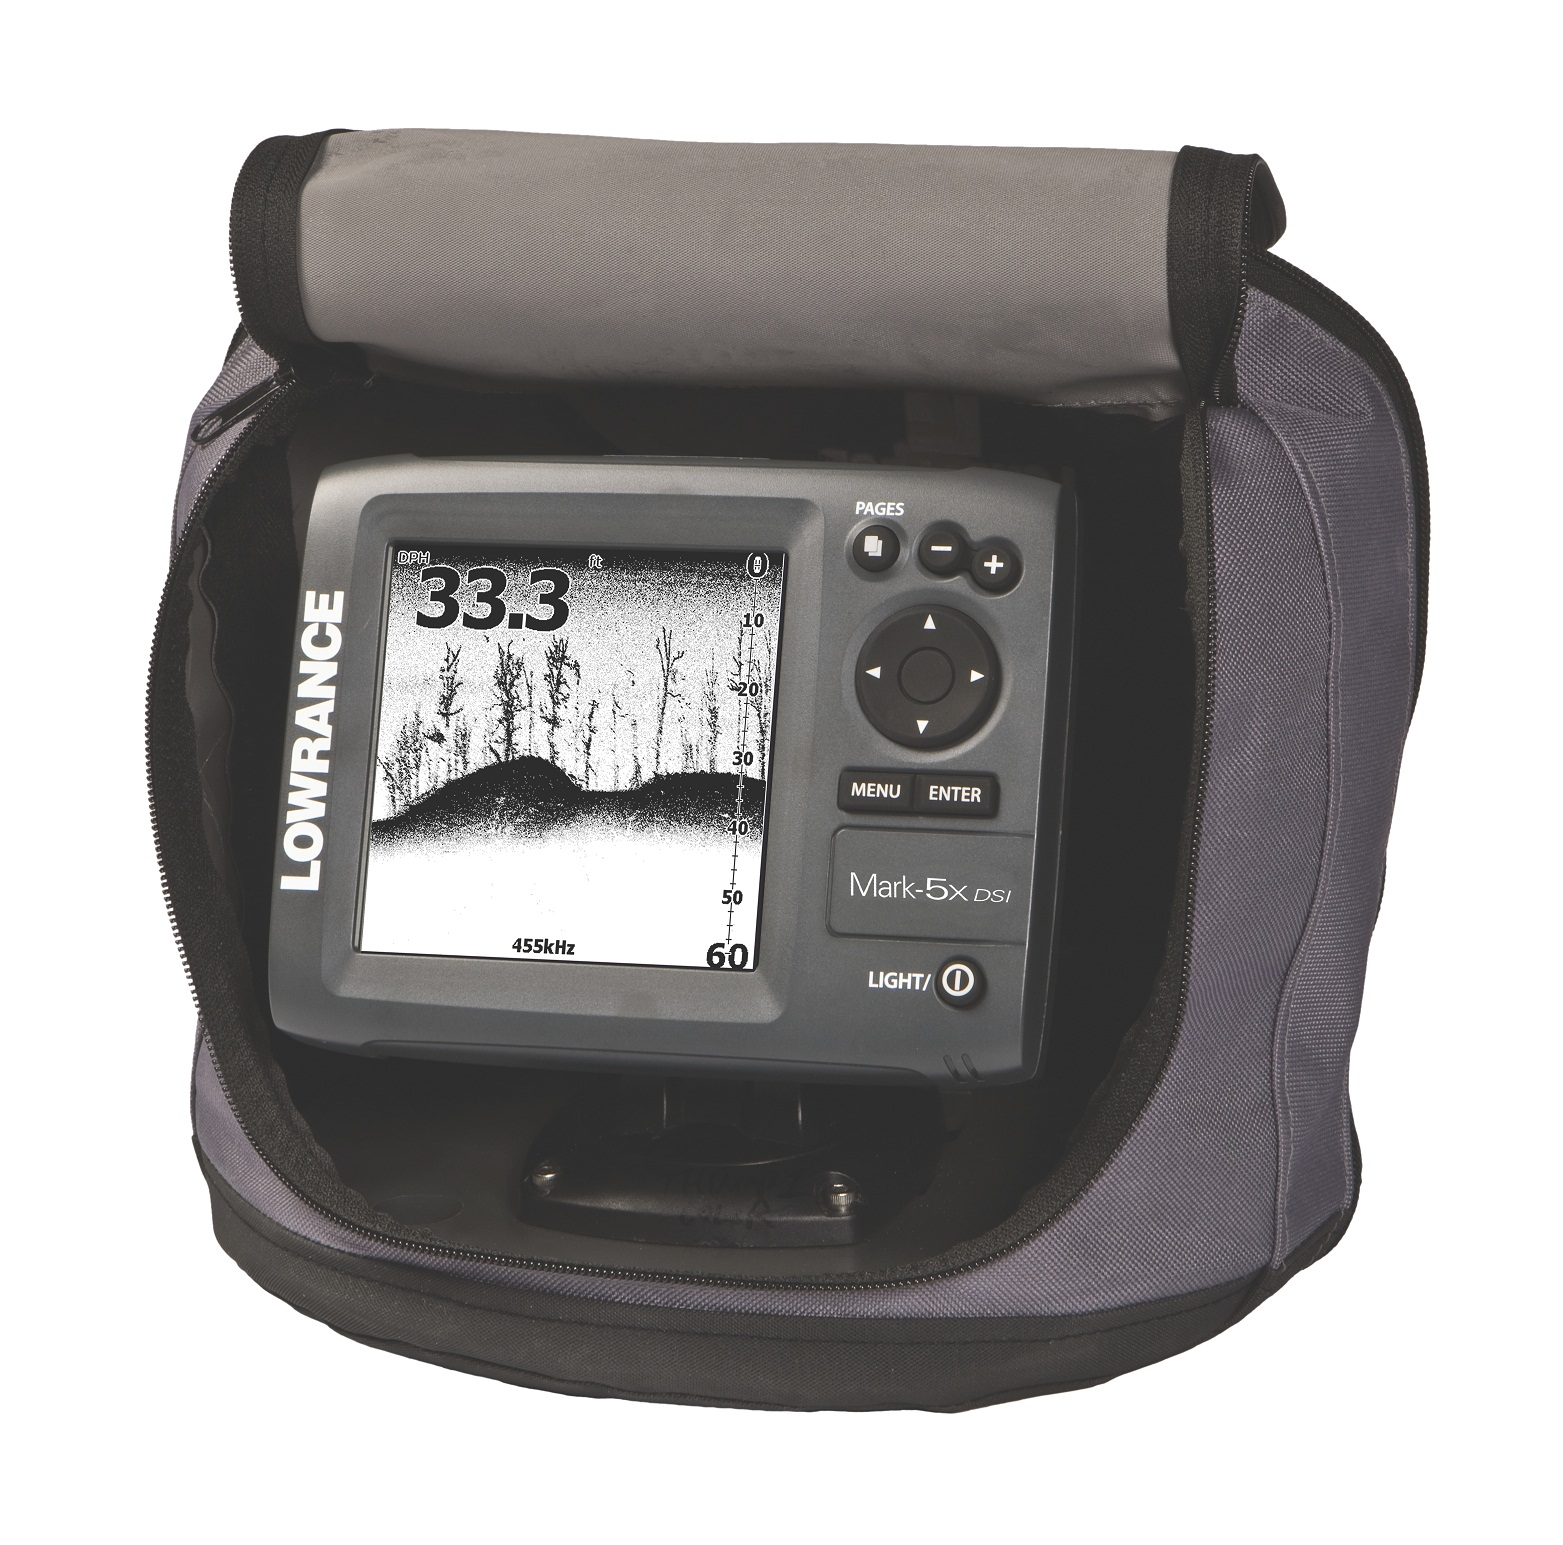 mark 5x dsi portable fishfinder, Fish Finder